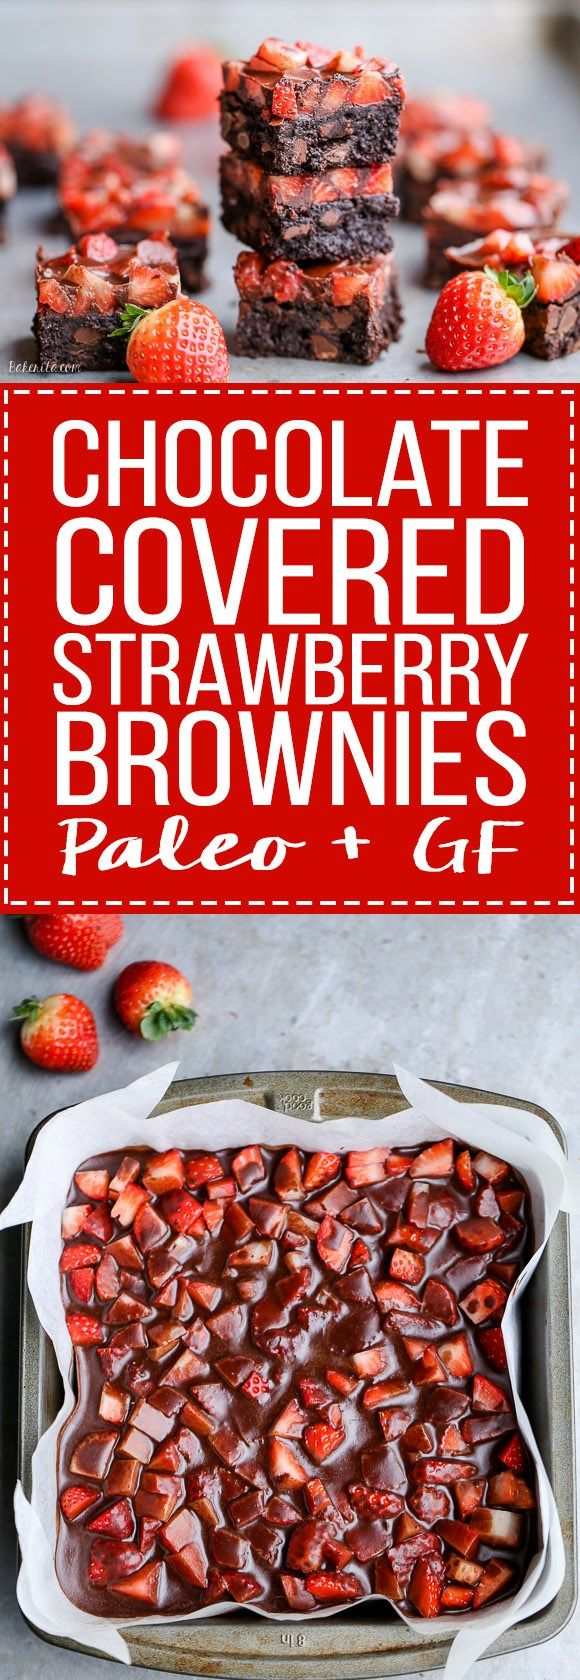 These Chocolate Covered Strawberry Brownies are a swoon-worthy + surprisingly guilt-free treat - they're gluten-free, refined sugar-free + Paleo! No one had ANY idea these weren't full of flour and sugar!